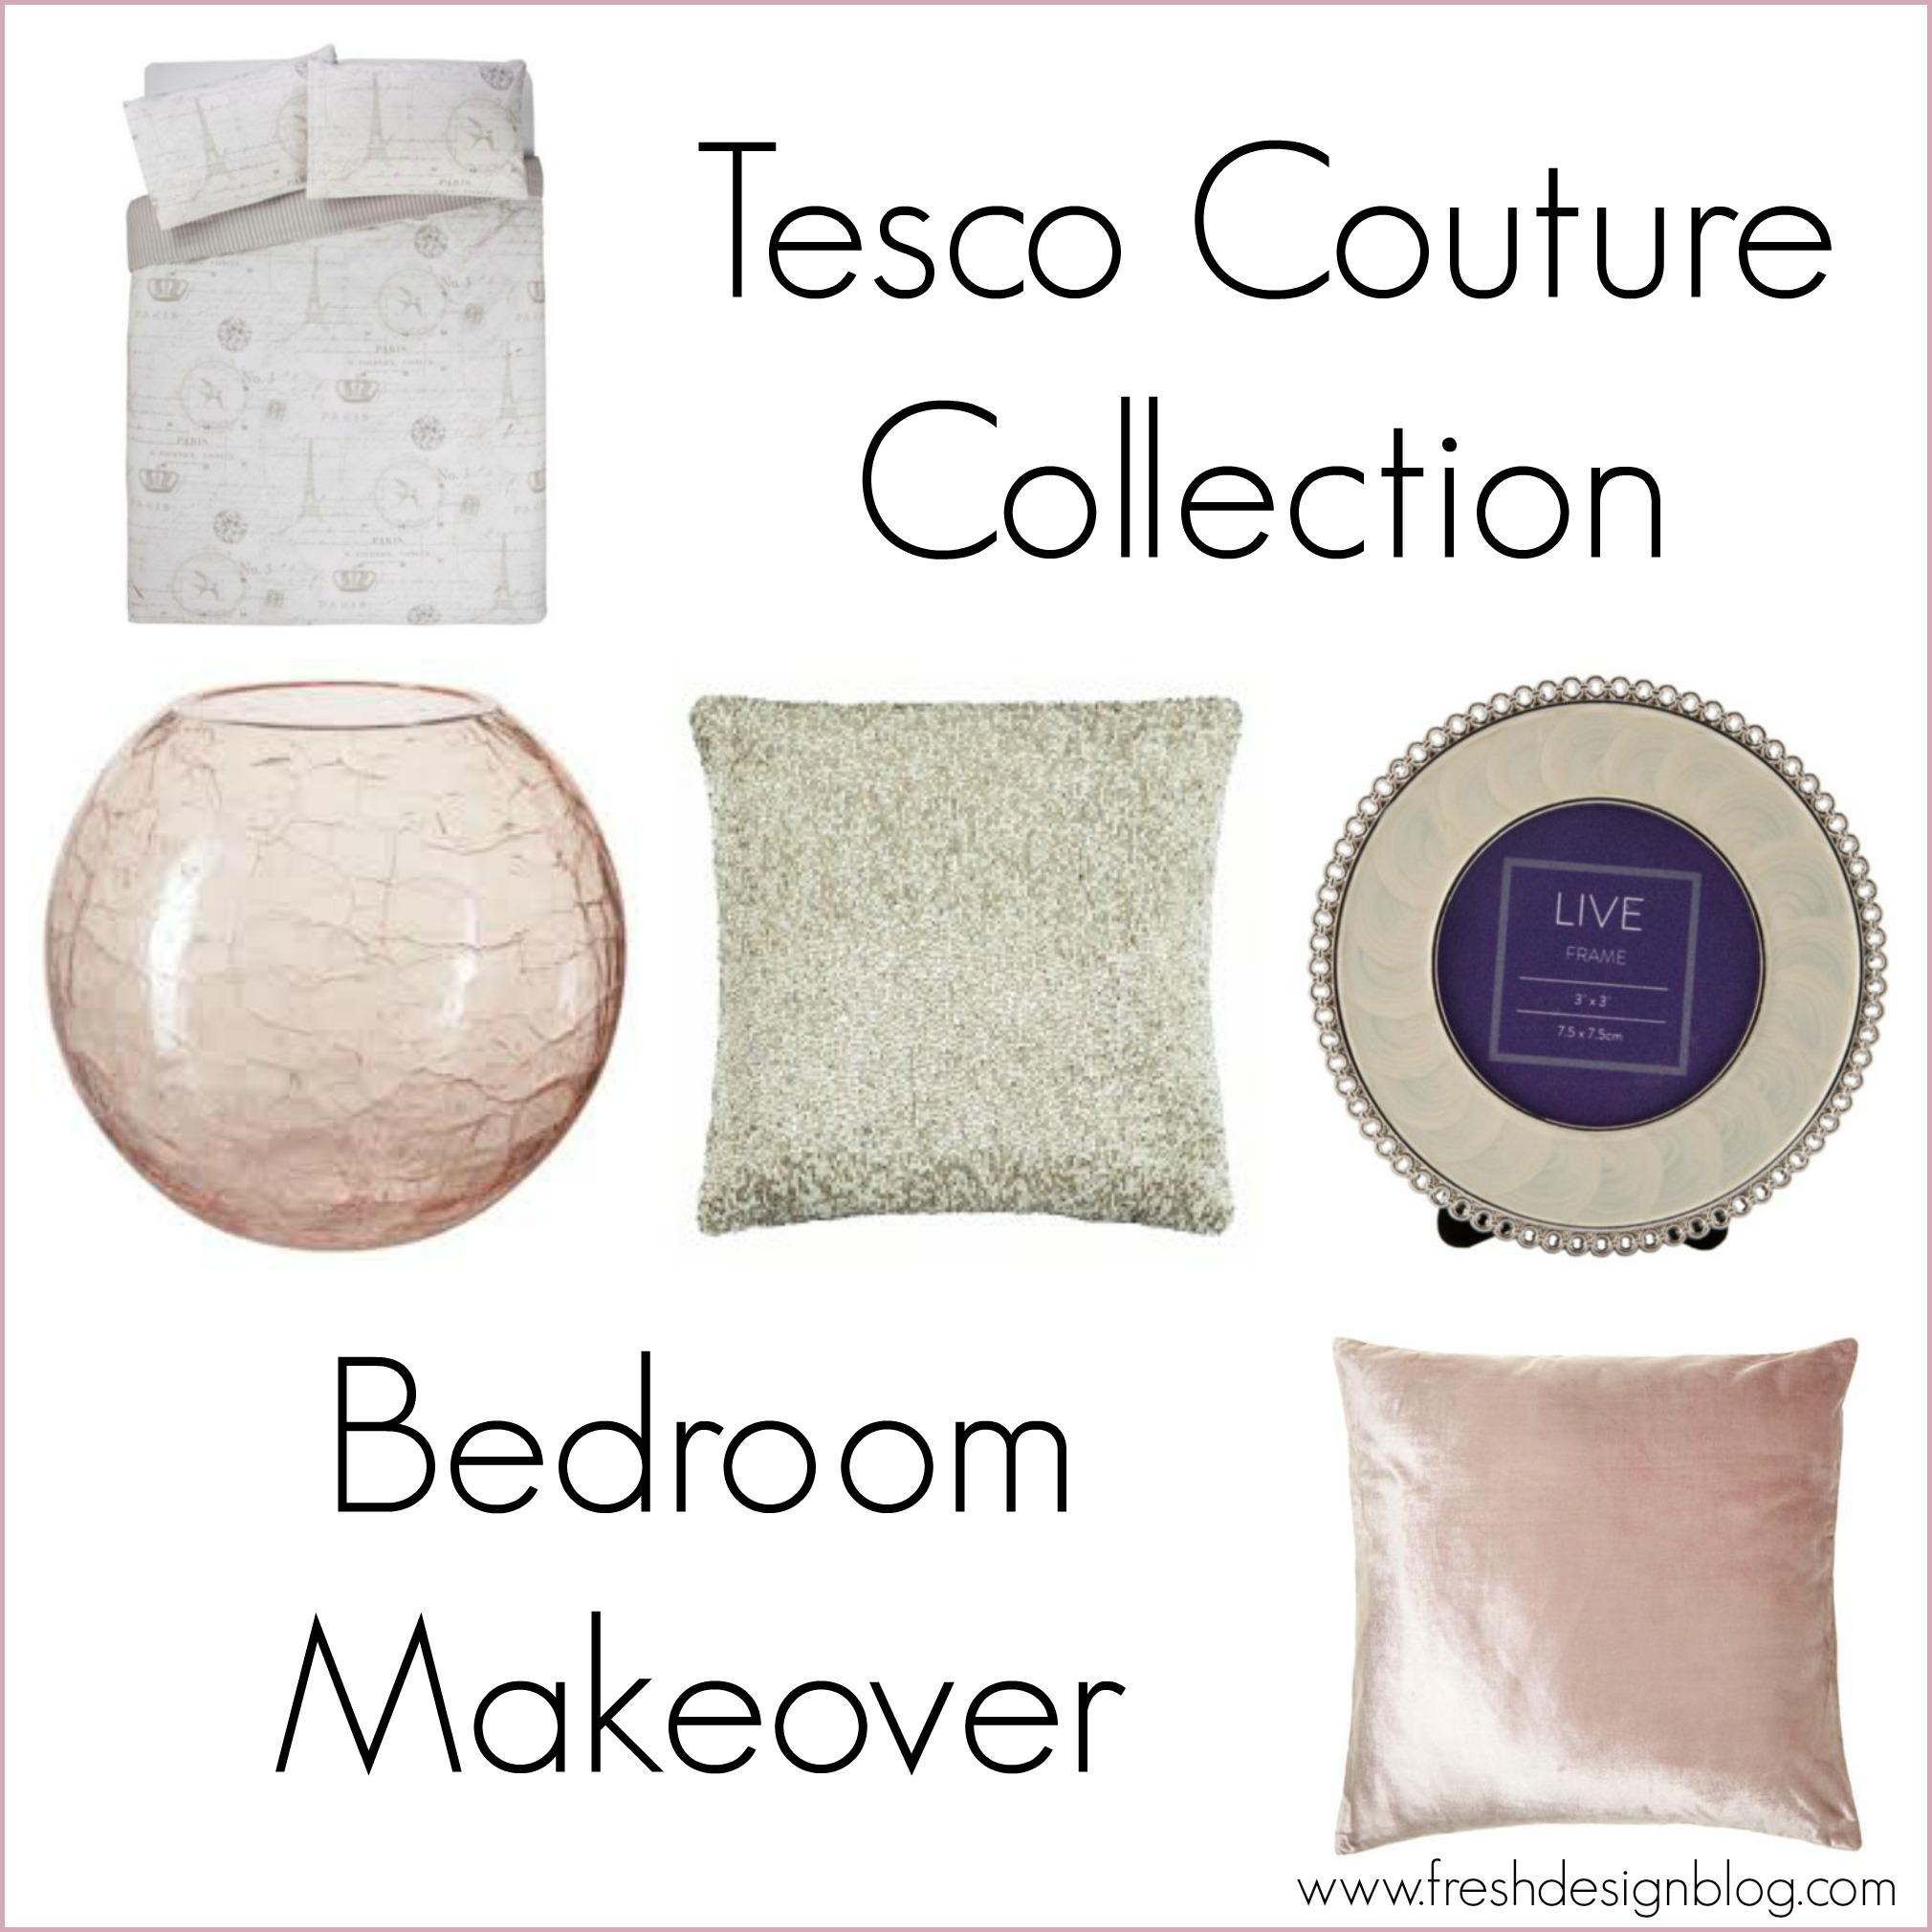 Tesco Couture Collection Bedroom Makeover Challenge Fresh Design Blog